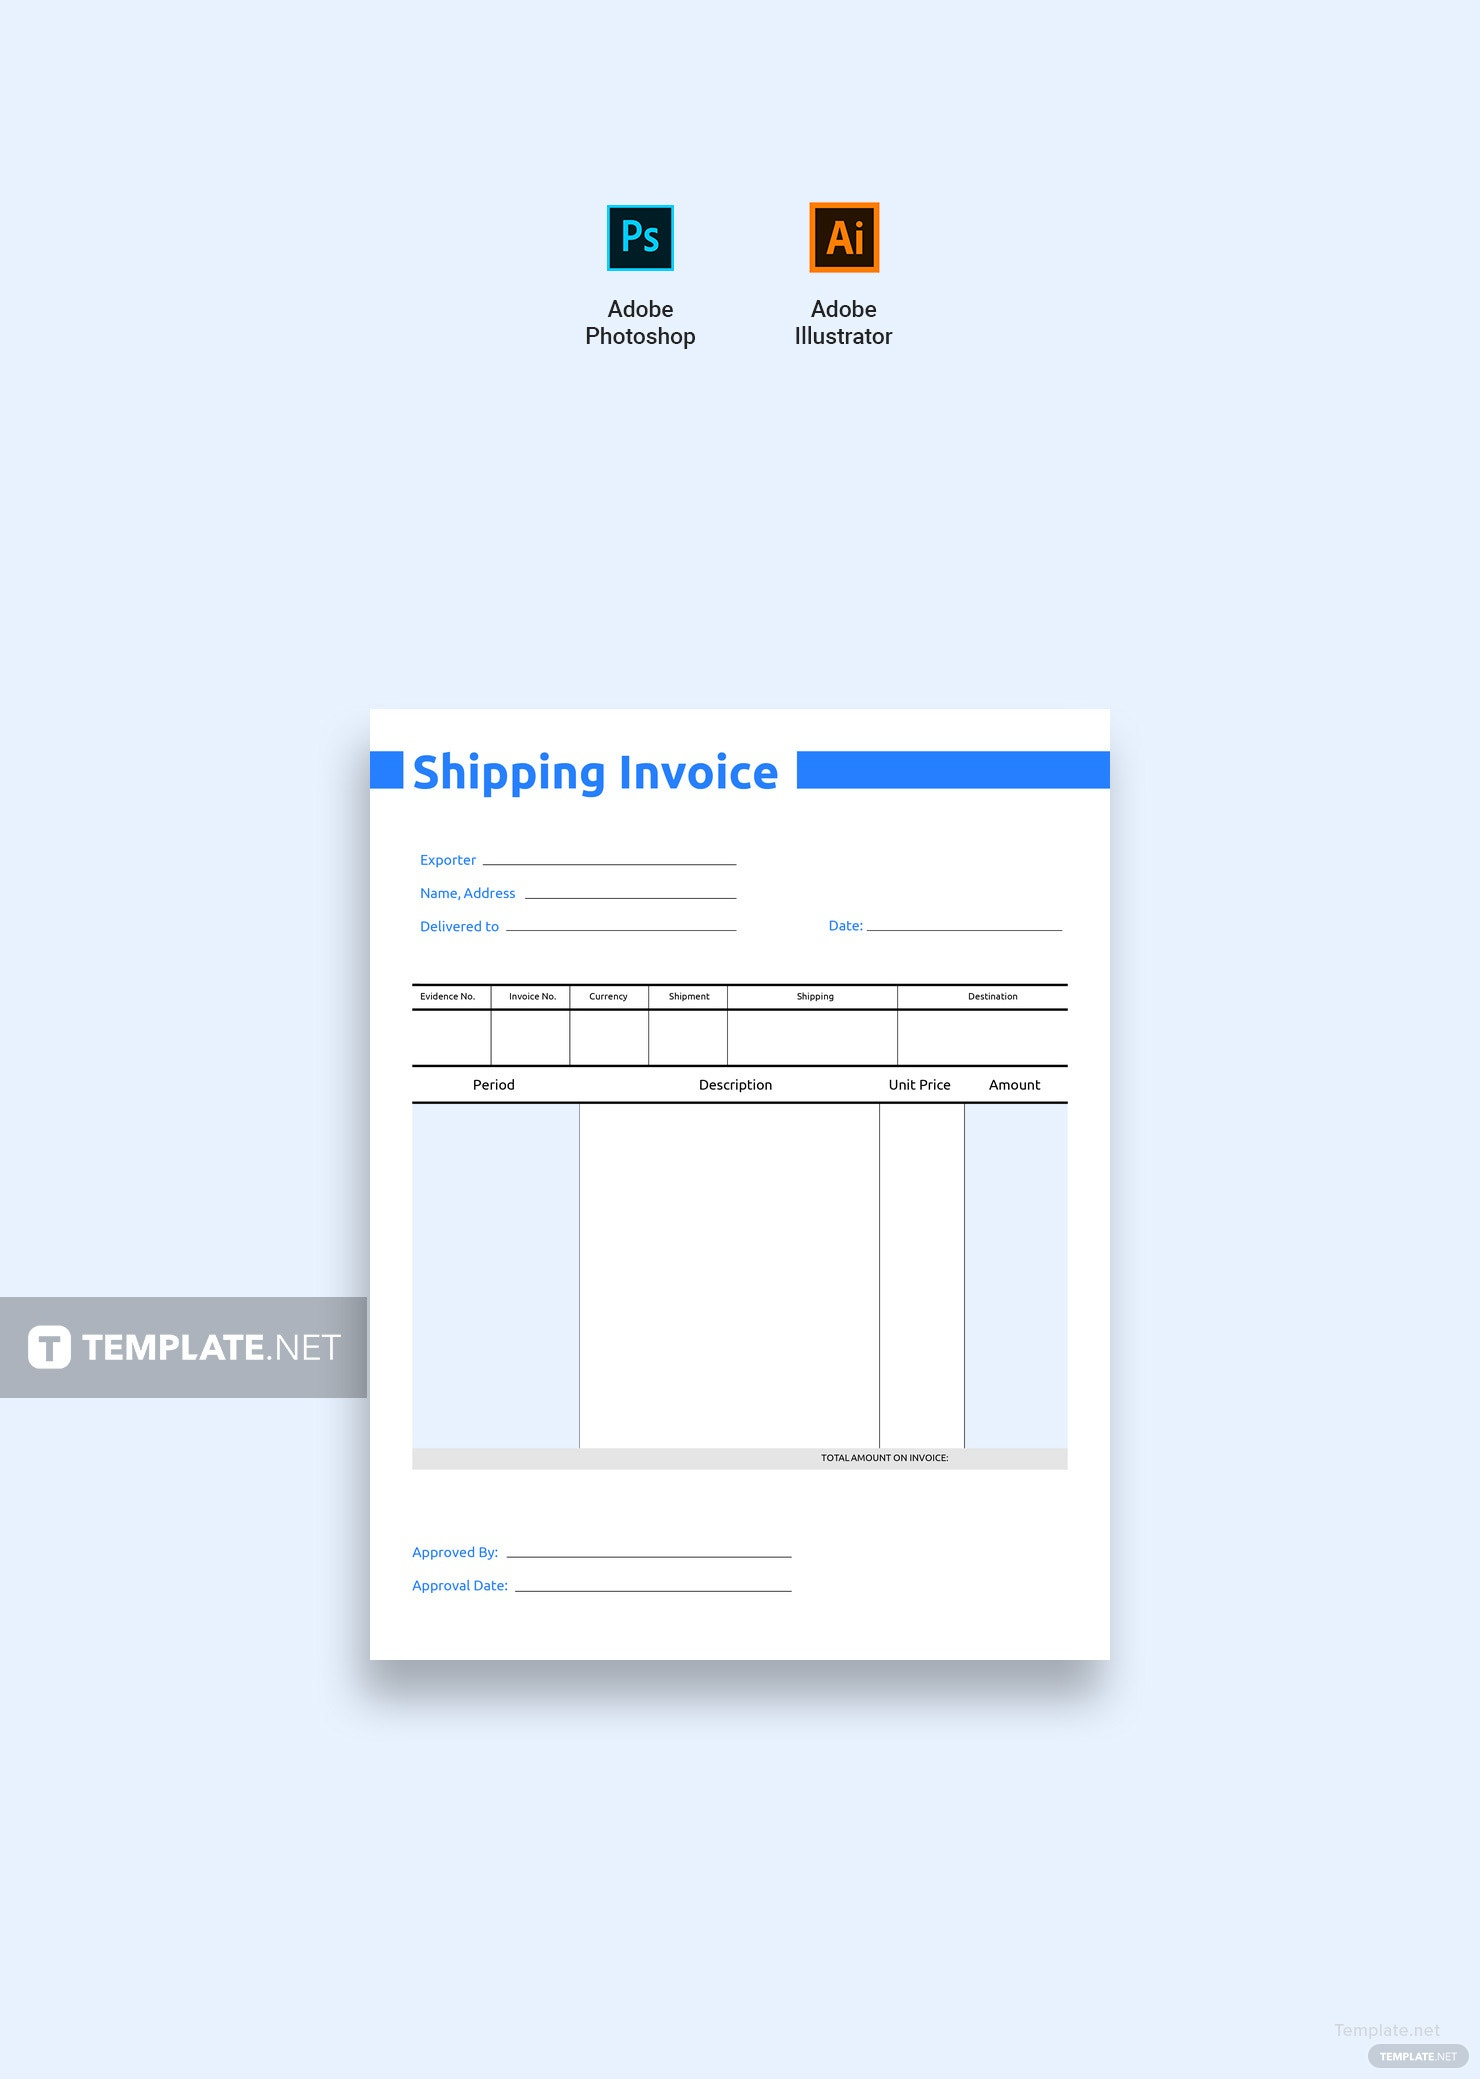 shipping invoice template - Akba.greenw.co